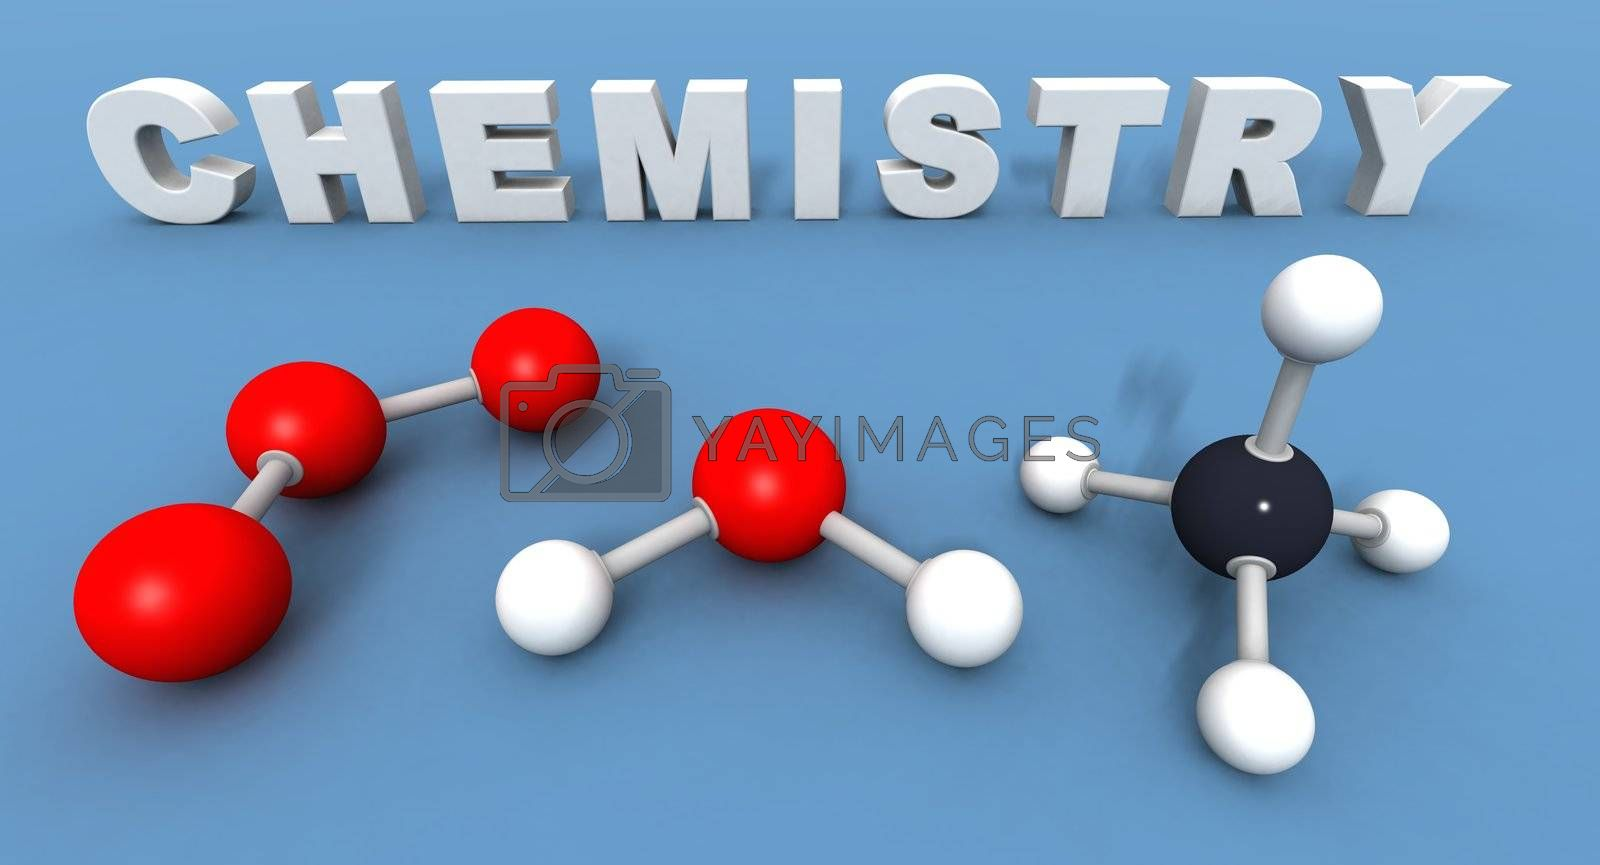 a 3Drender of some text and molecules to illustrate the word chemistry